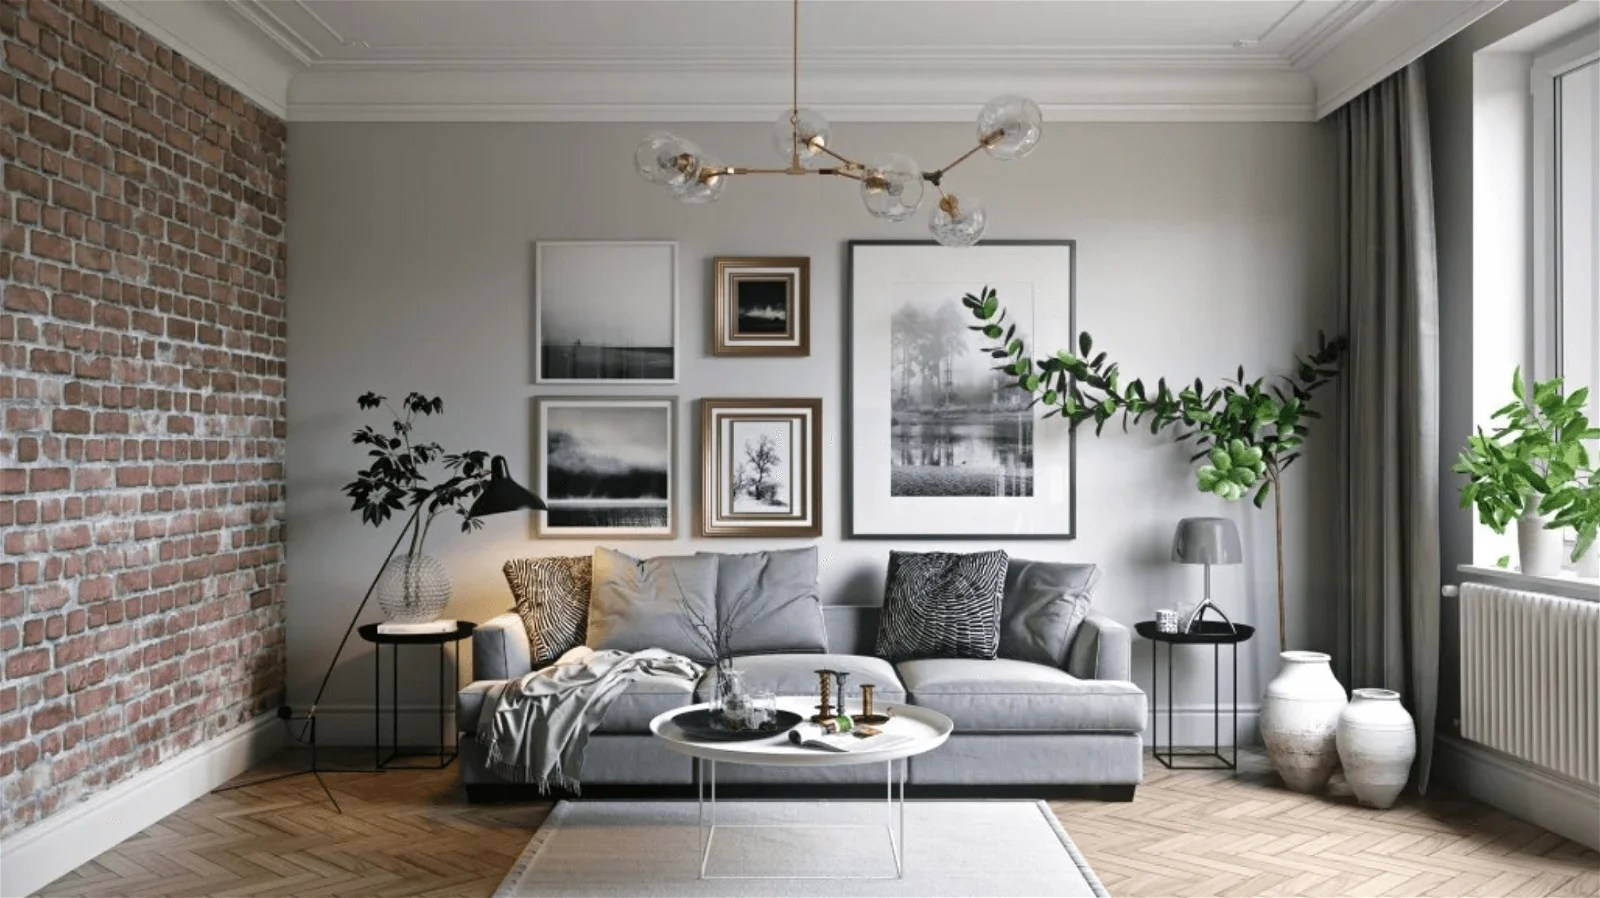 Modern Interior Design: 10 Best Tips for Creating ... on Best Sconces For Living Rooms Near Me id=34135